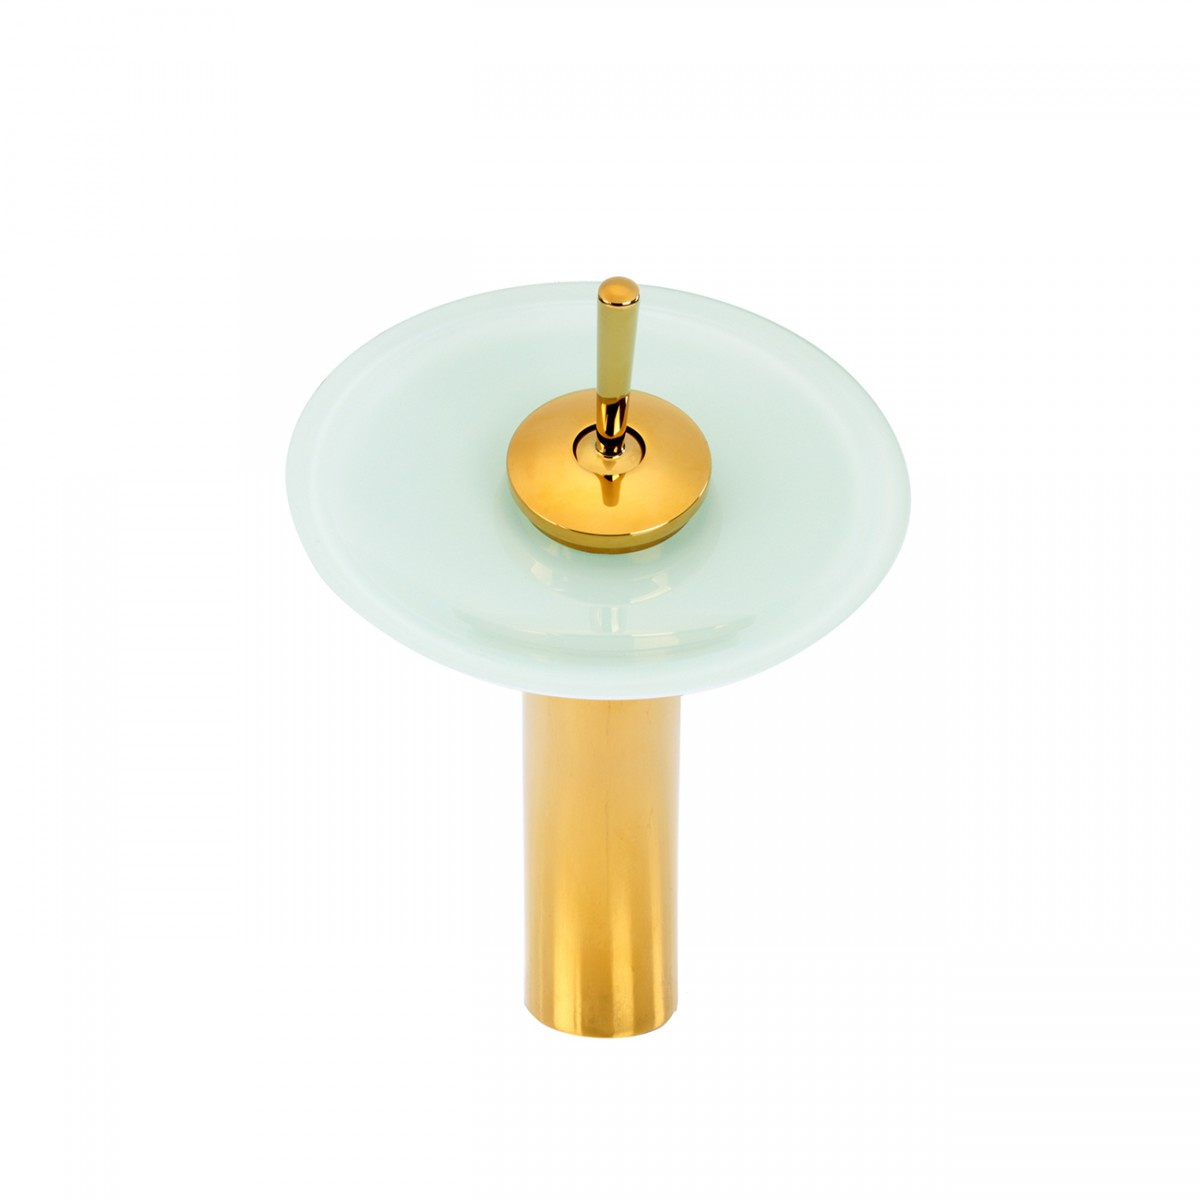 Cast Brass Gold PVD Waterfall Faucet Teal Green 12 H Glass plate Waterfall Sink Faucet Waterfall Bathroom Faucets Glass Disk Faucet